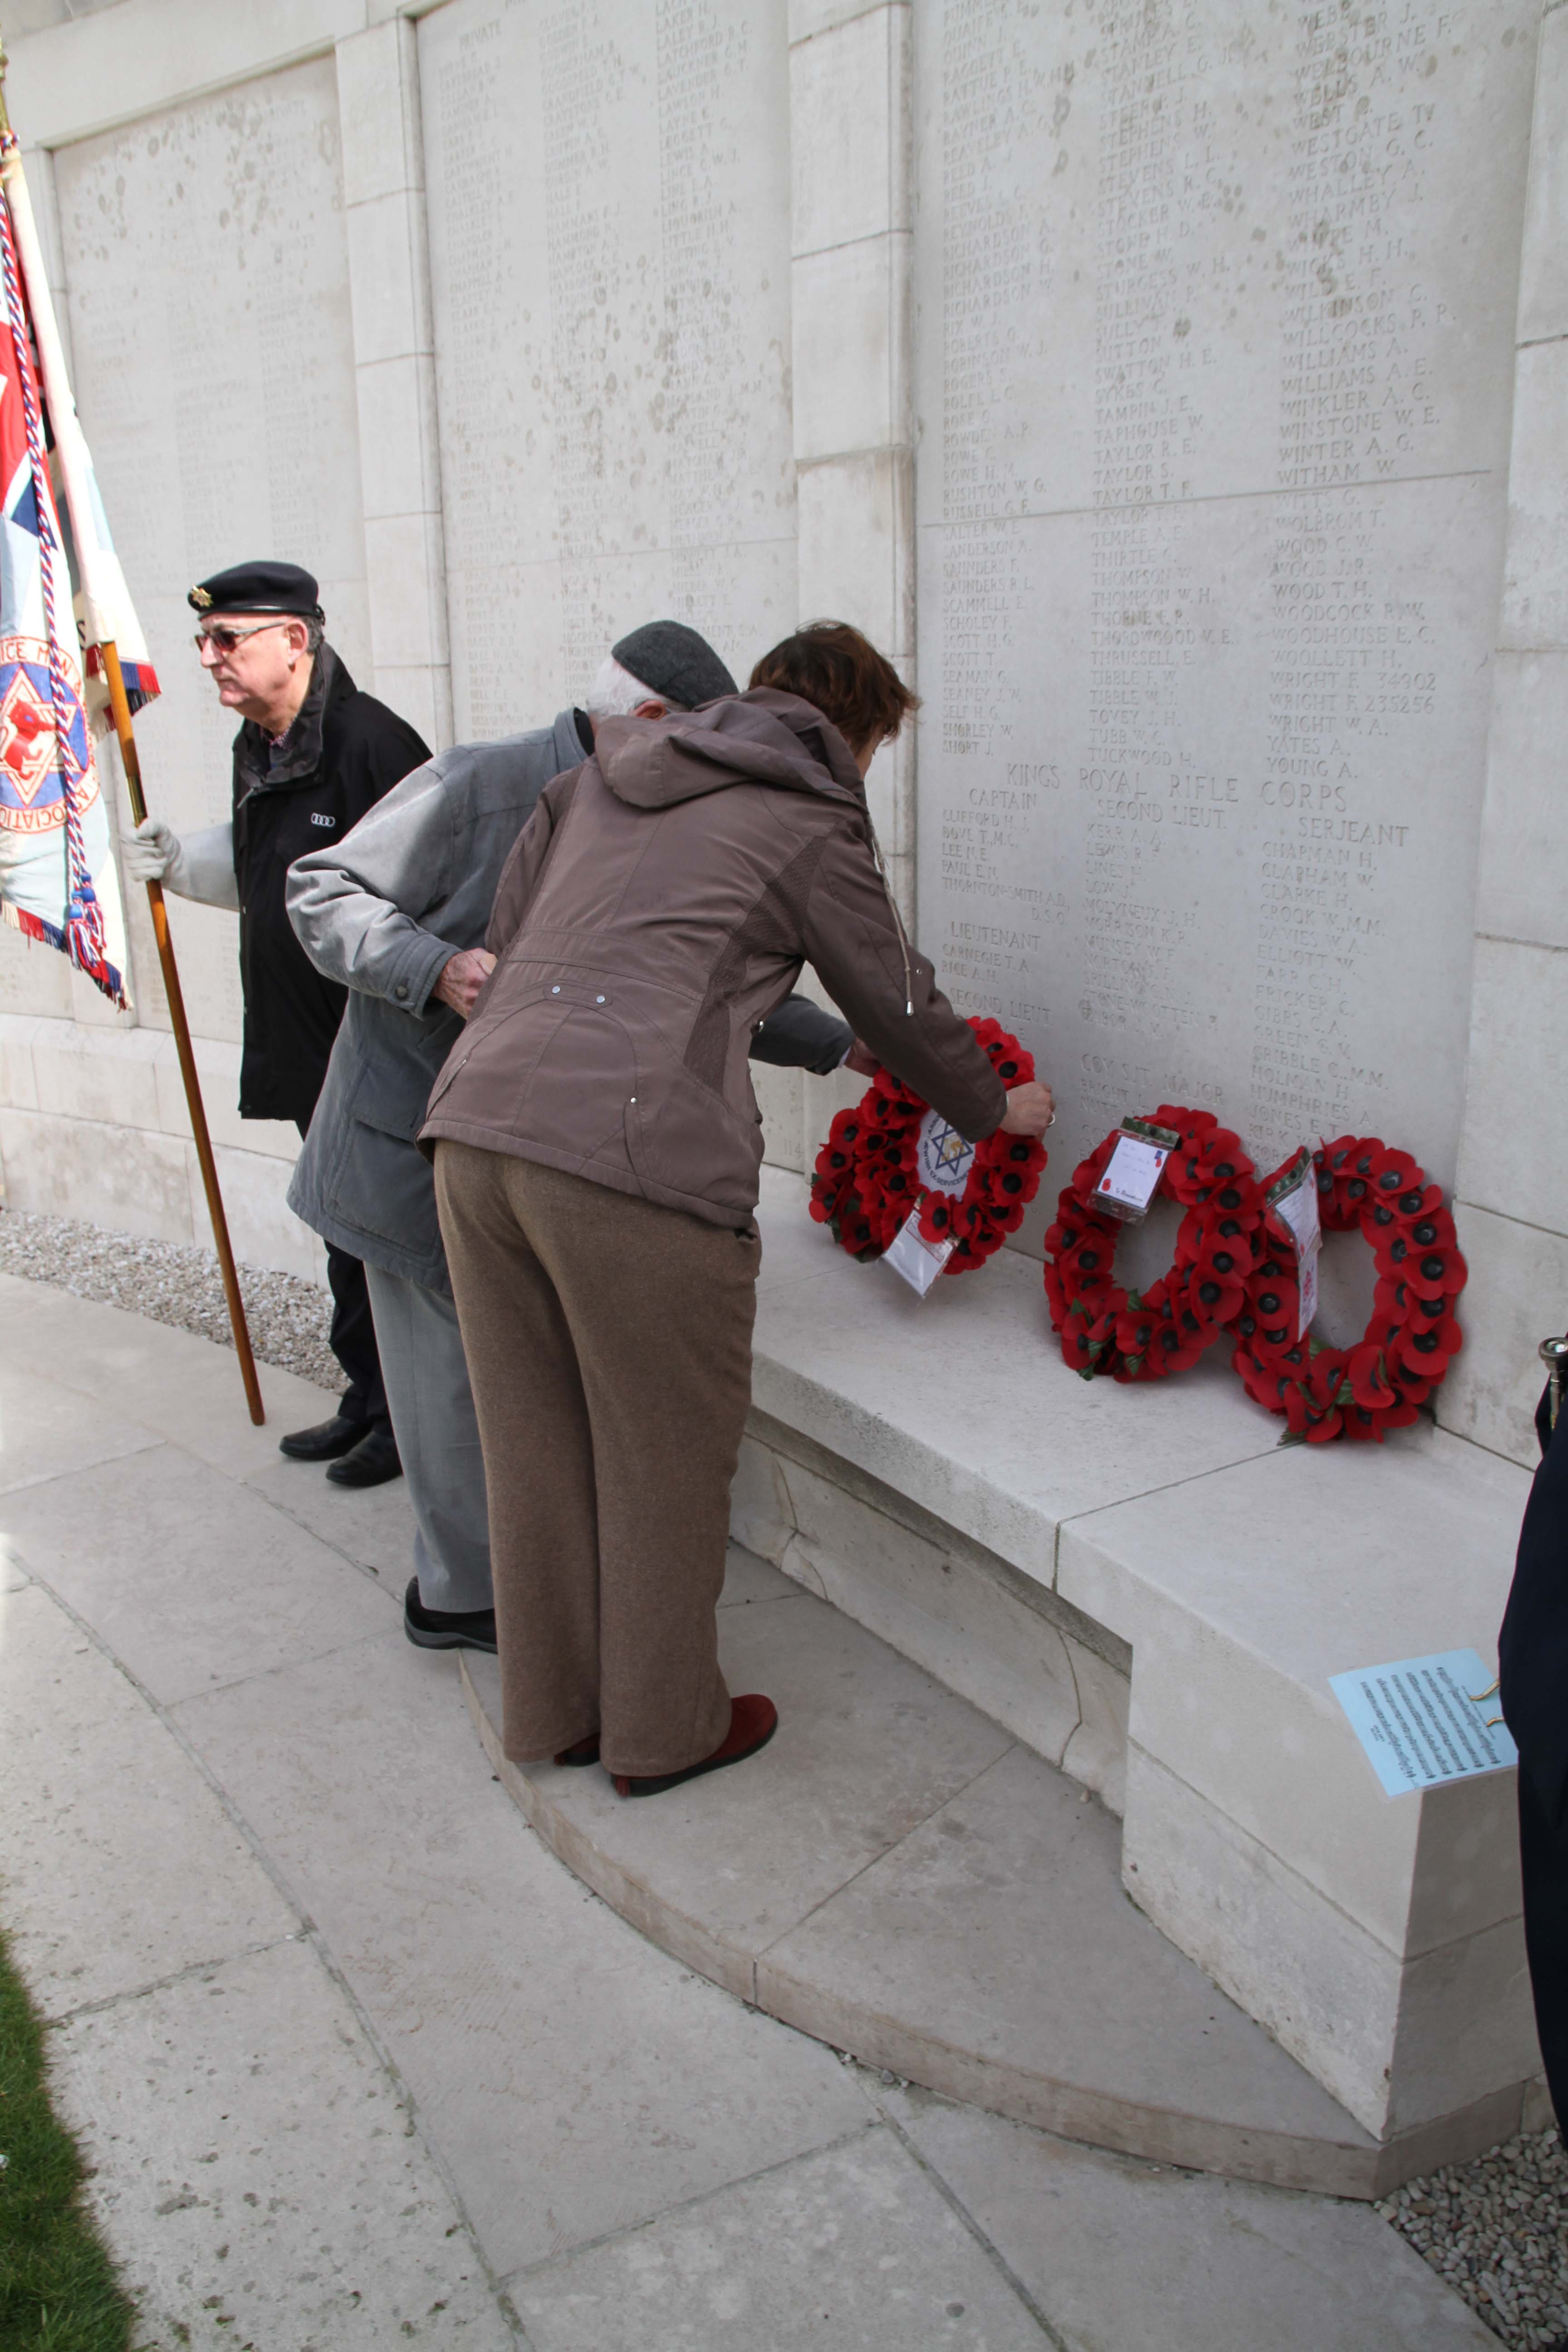 Tyne Cot CWGC Cemetery wreath laying. We Were There Too trip to Ypres, April 2017. By Alan Brill, Voluntary Photographer